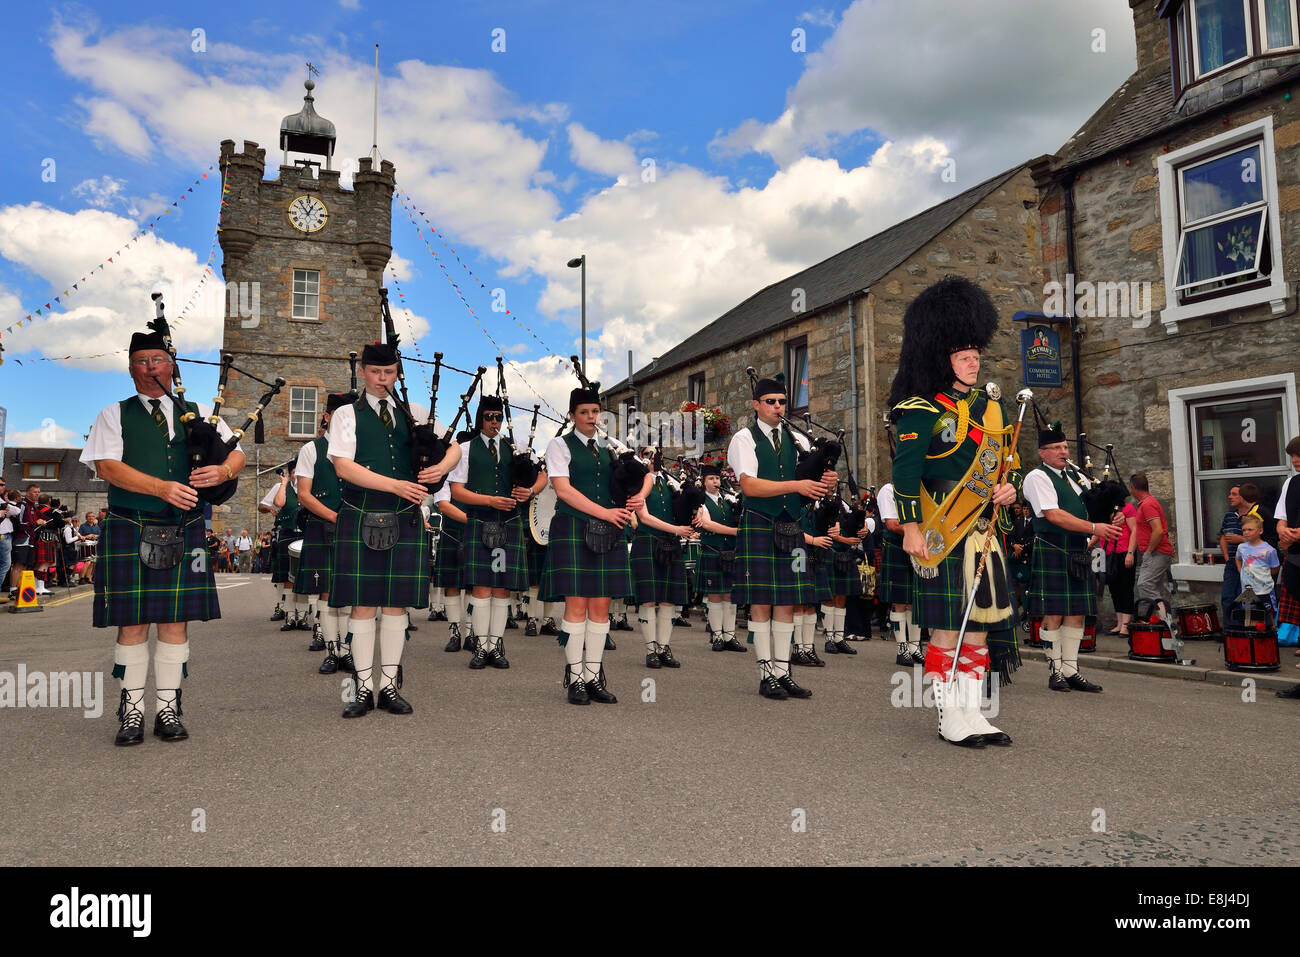 Pipe major leading a pipe band, stationary in front of the clock tower in the town centre, Dufftown, Moray, Highlands, - Stock Image